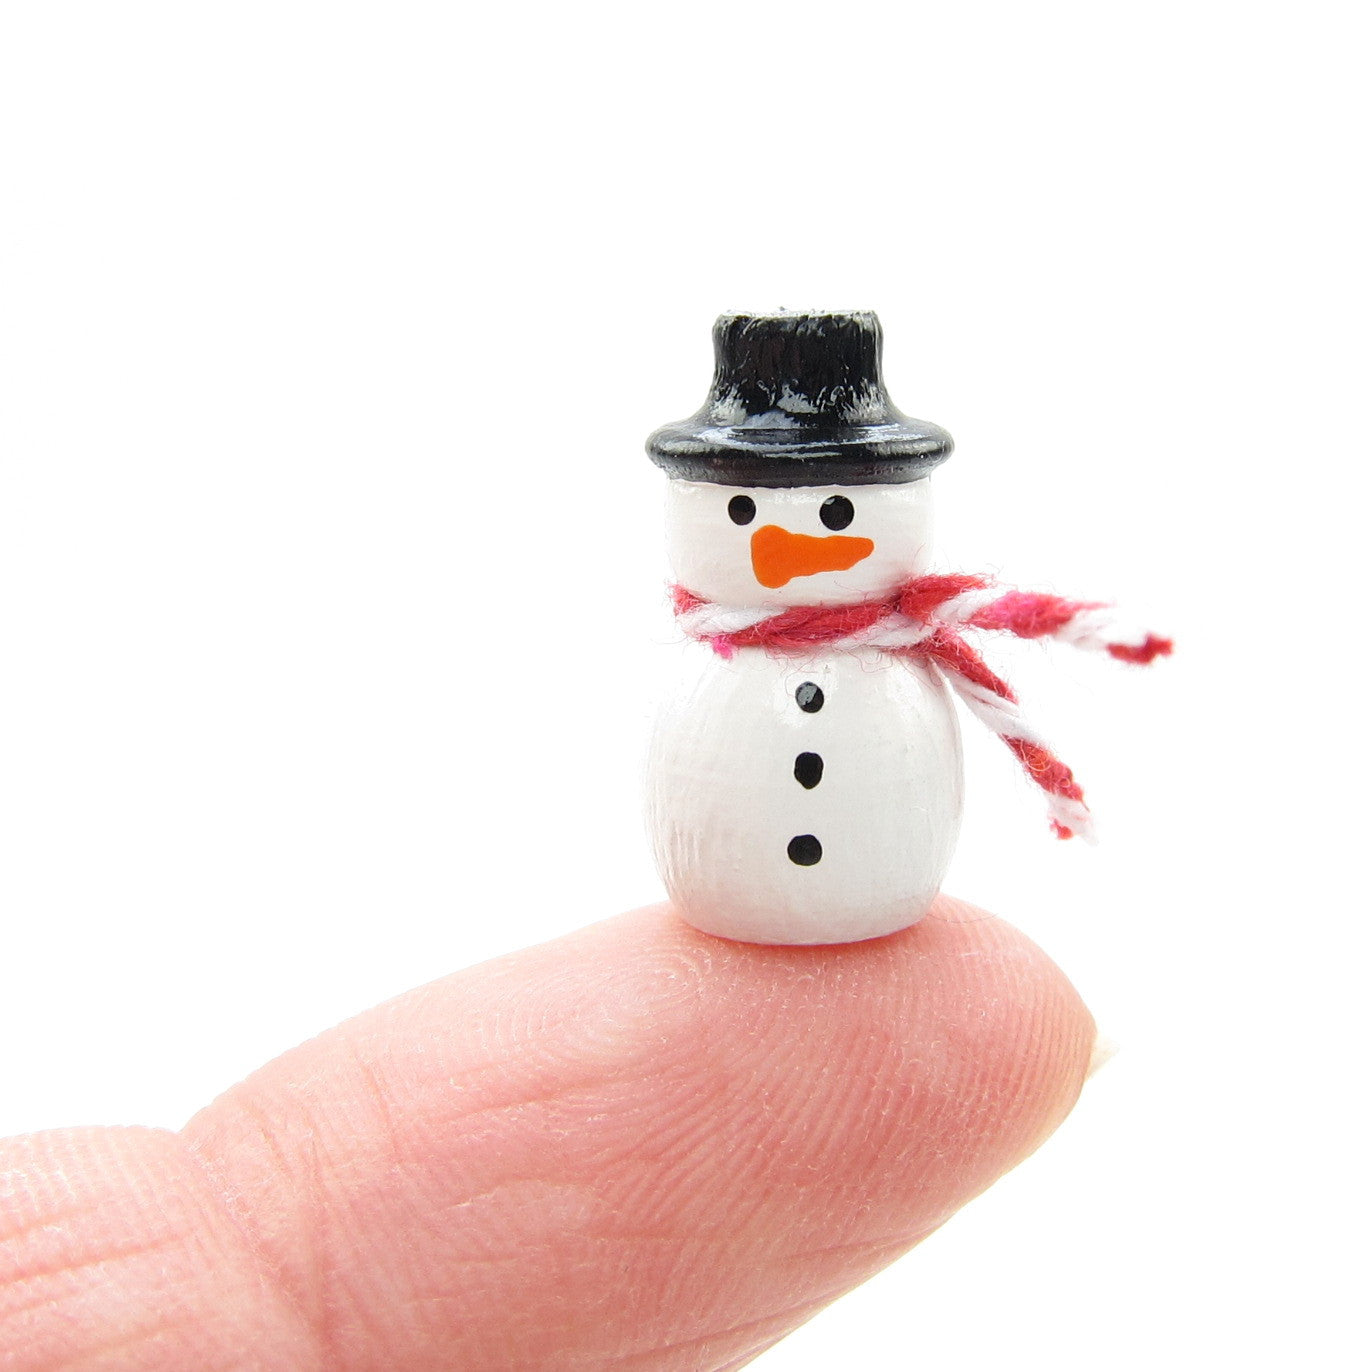 Miniature wooden hand painted snowman figurine